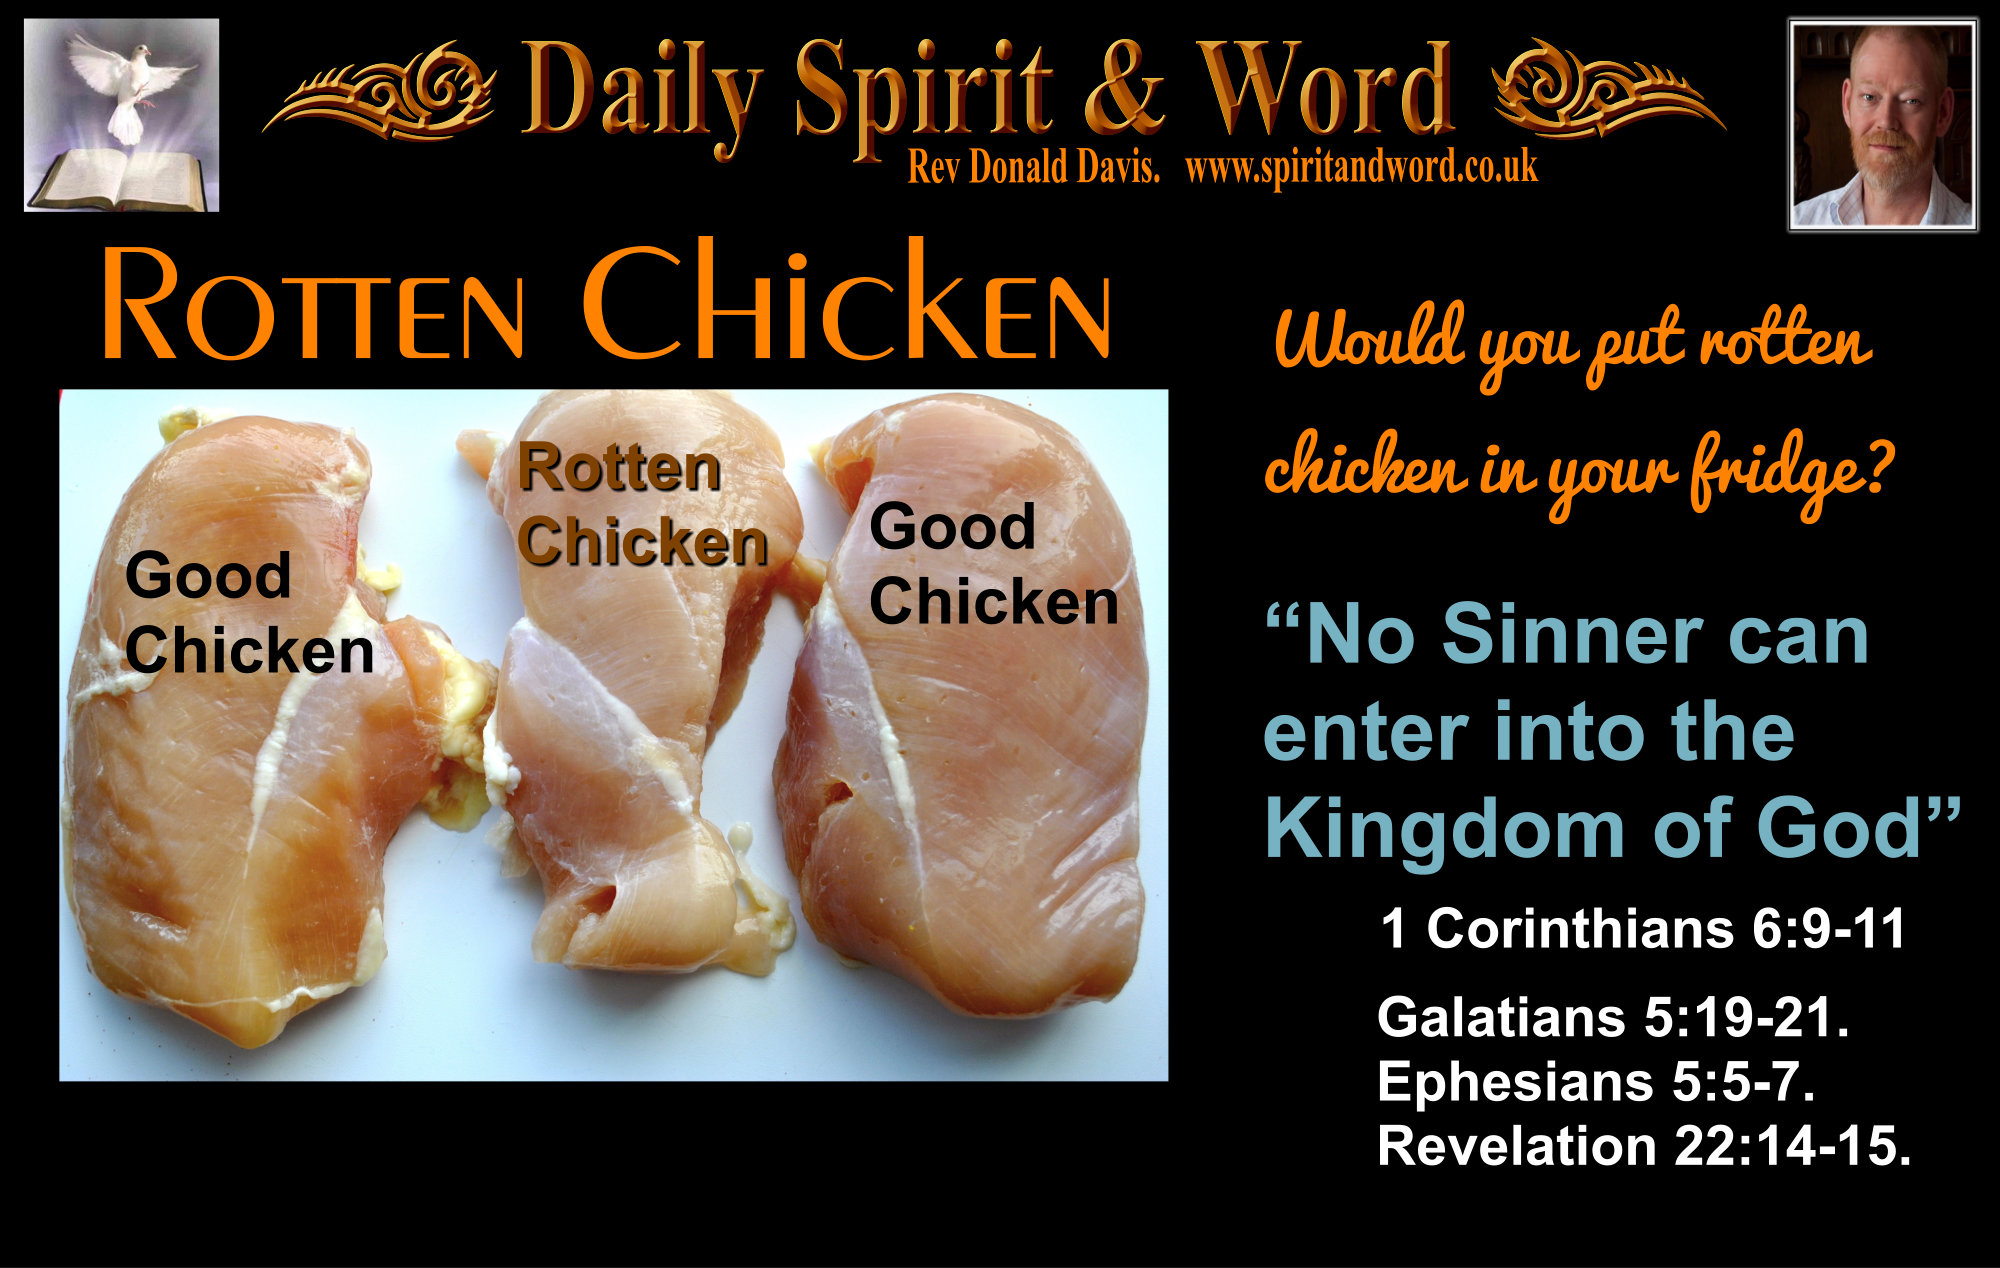 What would you do with rotten chicken?